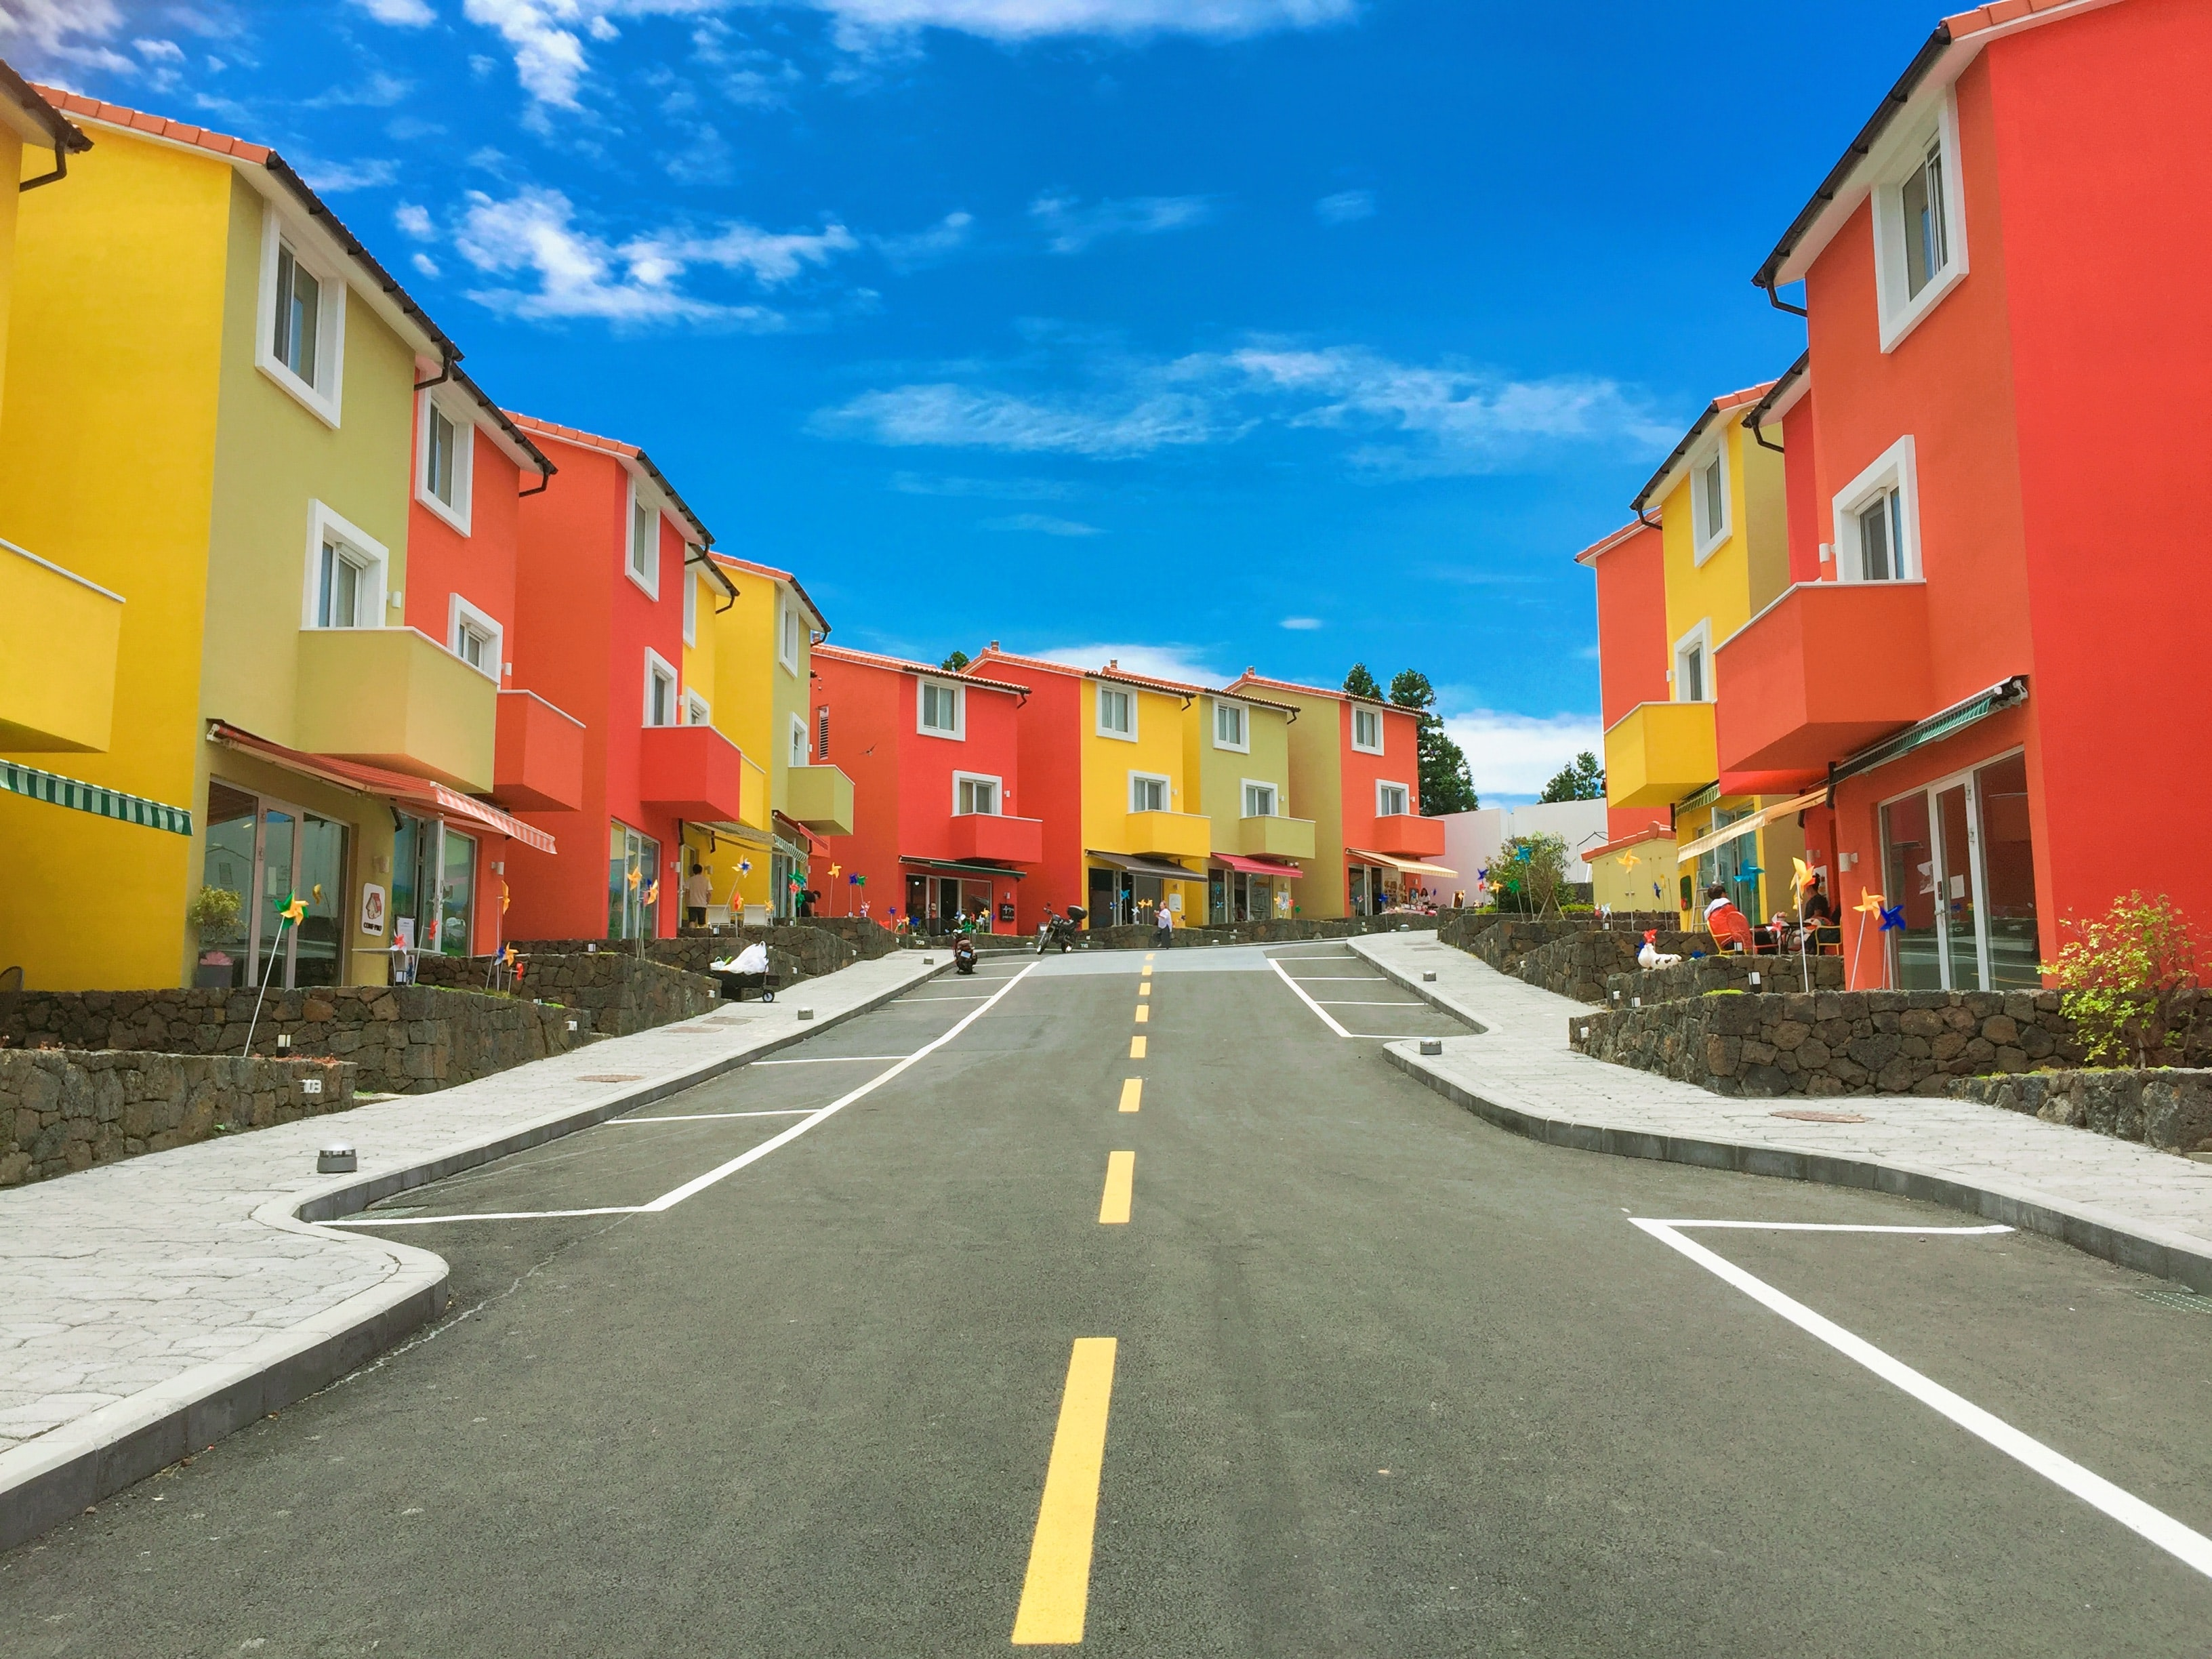 Road with bright red and yellow colored houses with windows, and brilliant blue sky